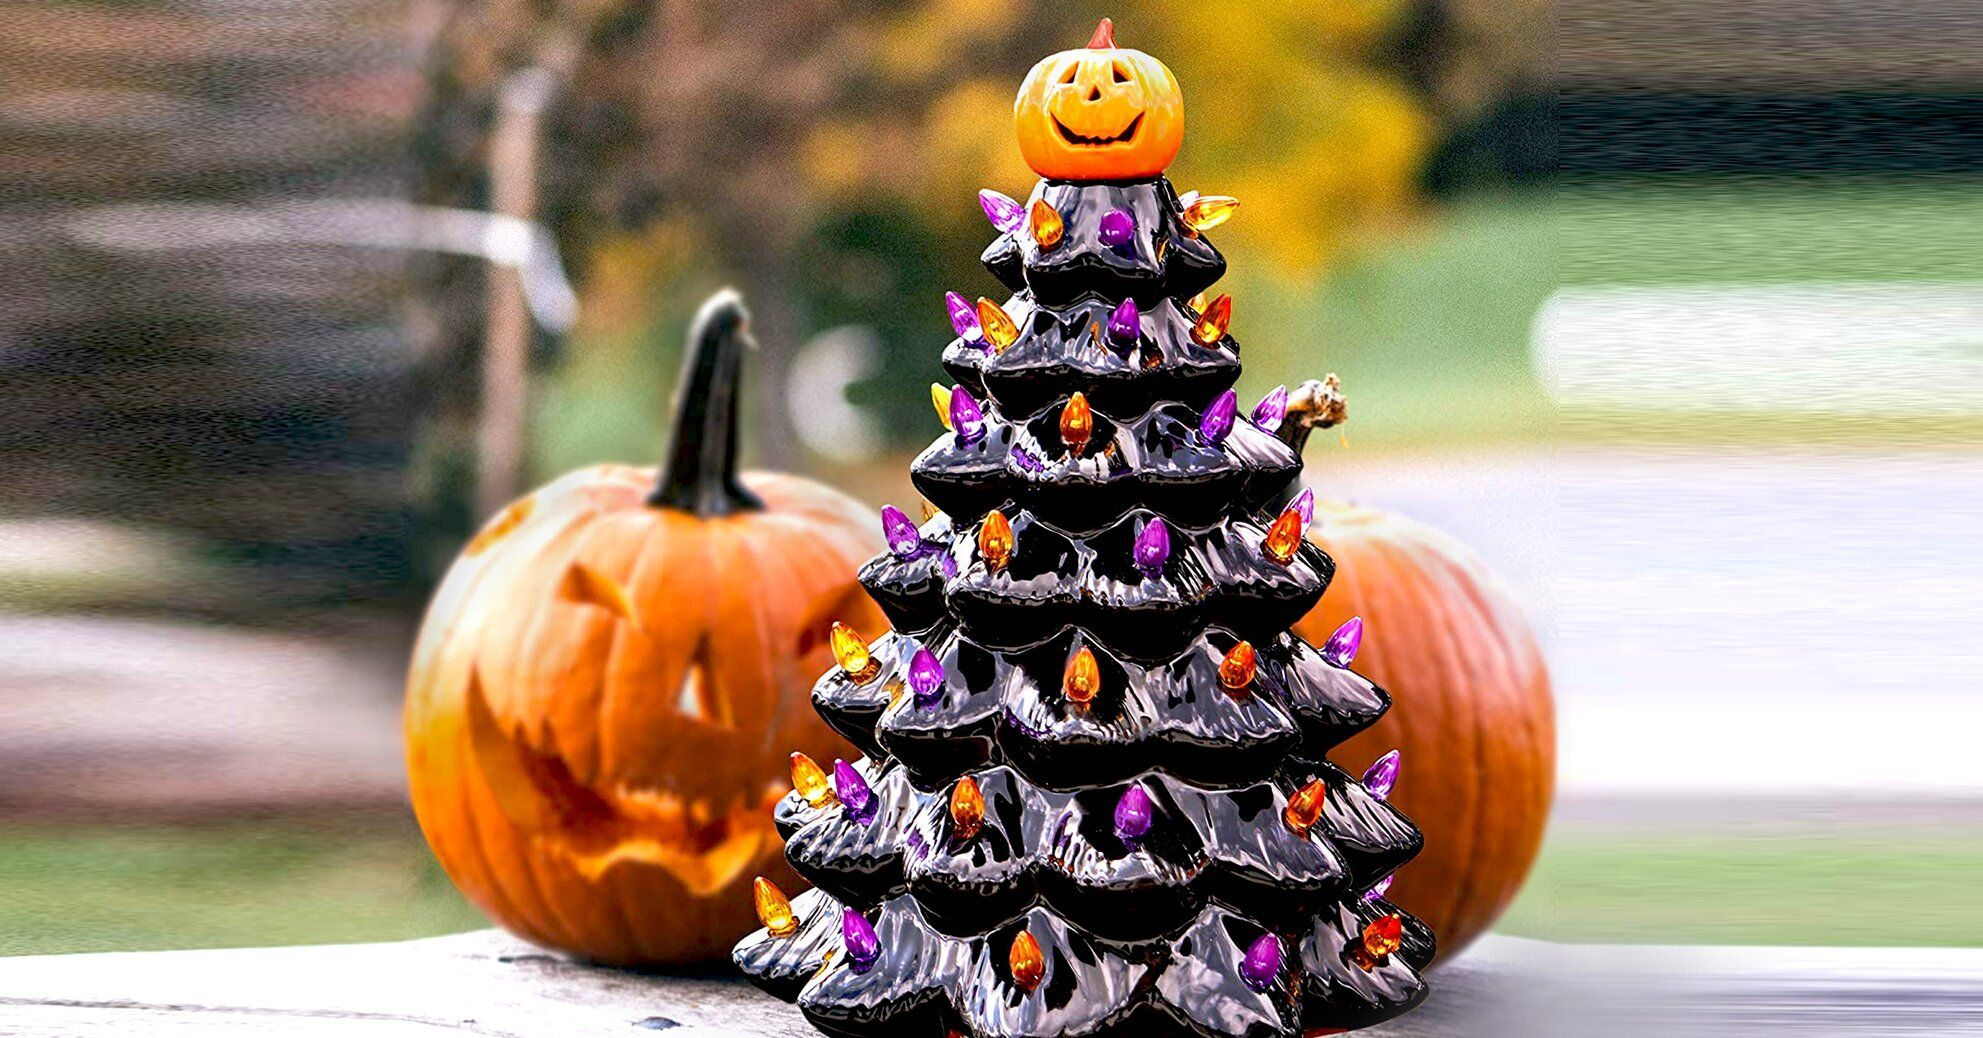 Amazon's Ceramic Halloween Tree Is Back In Stock—But Not